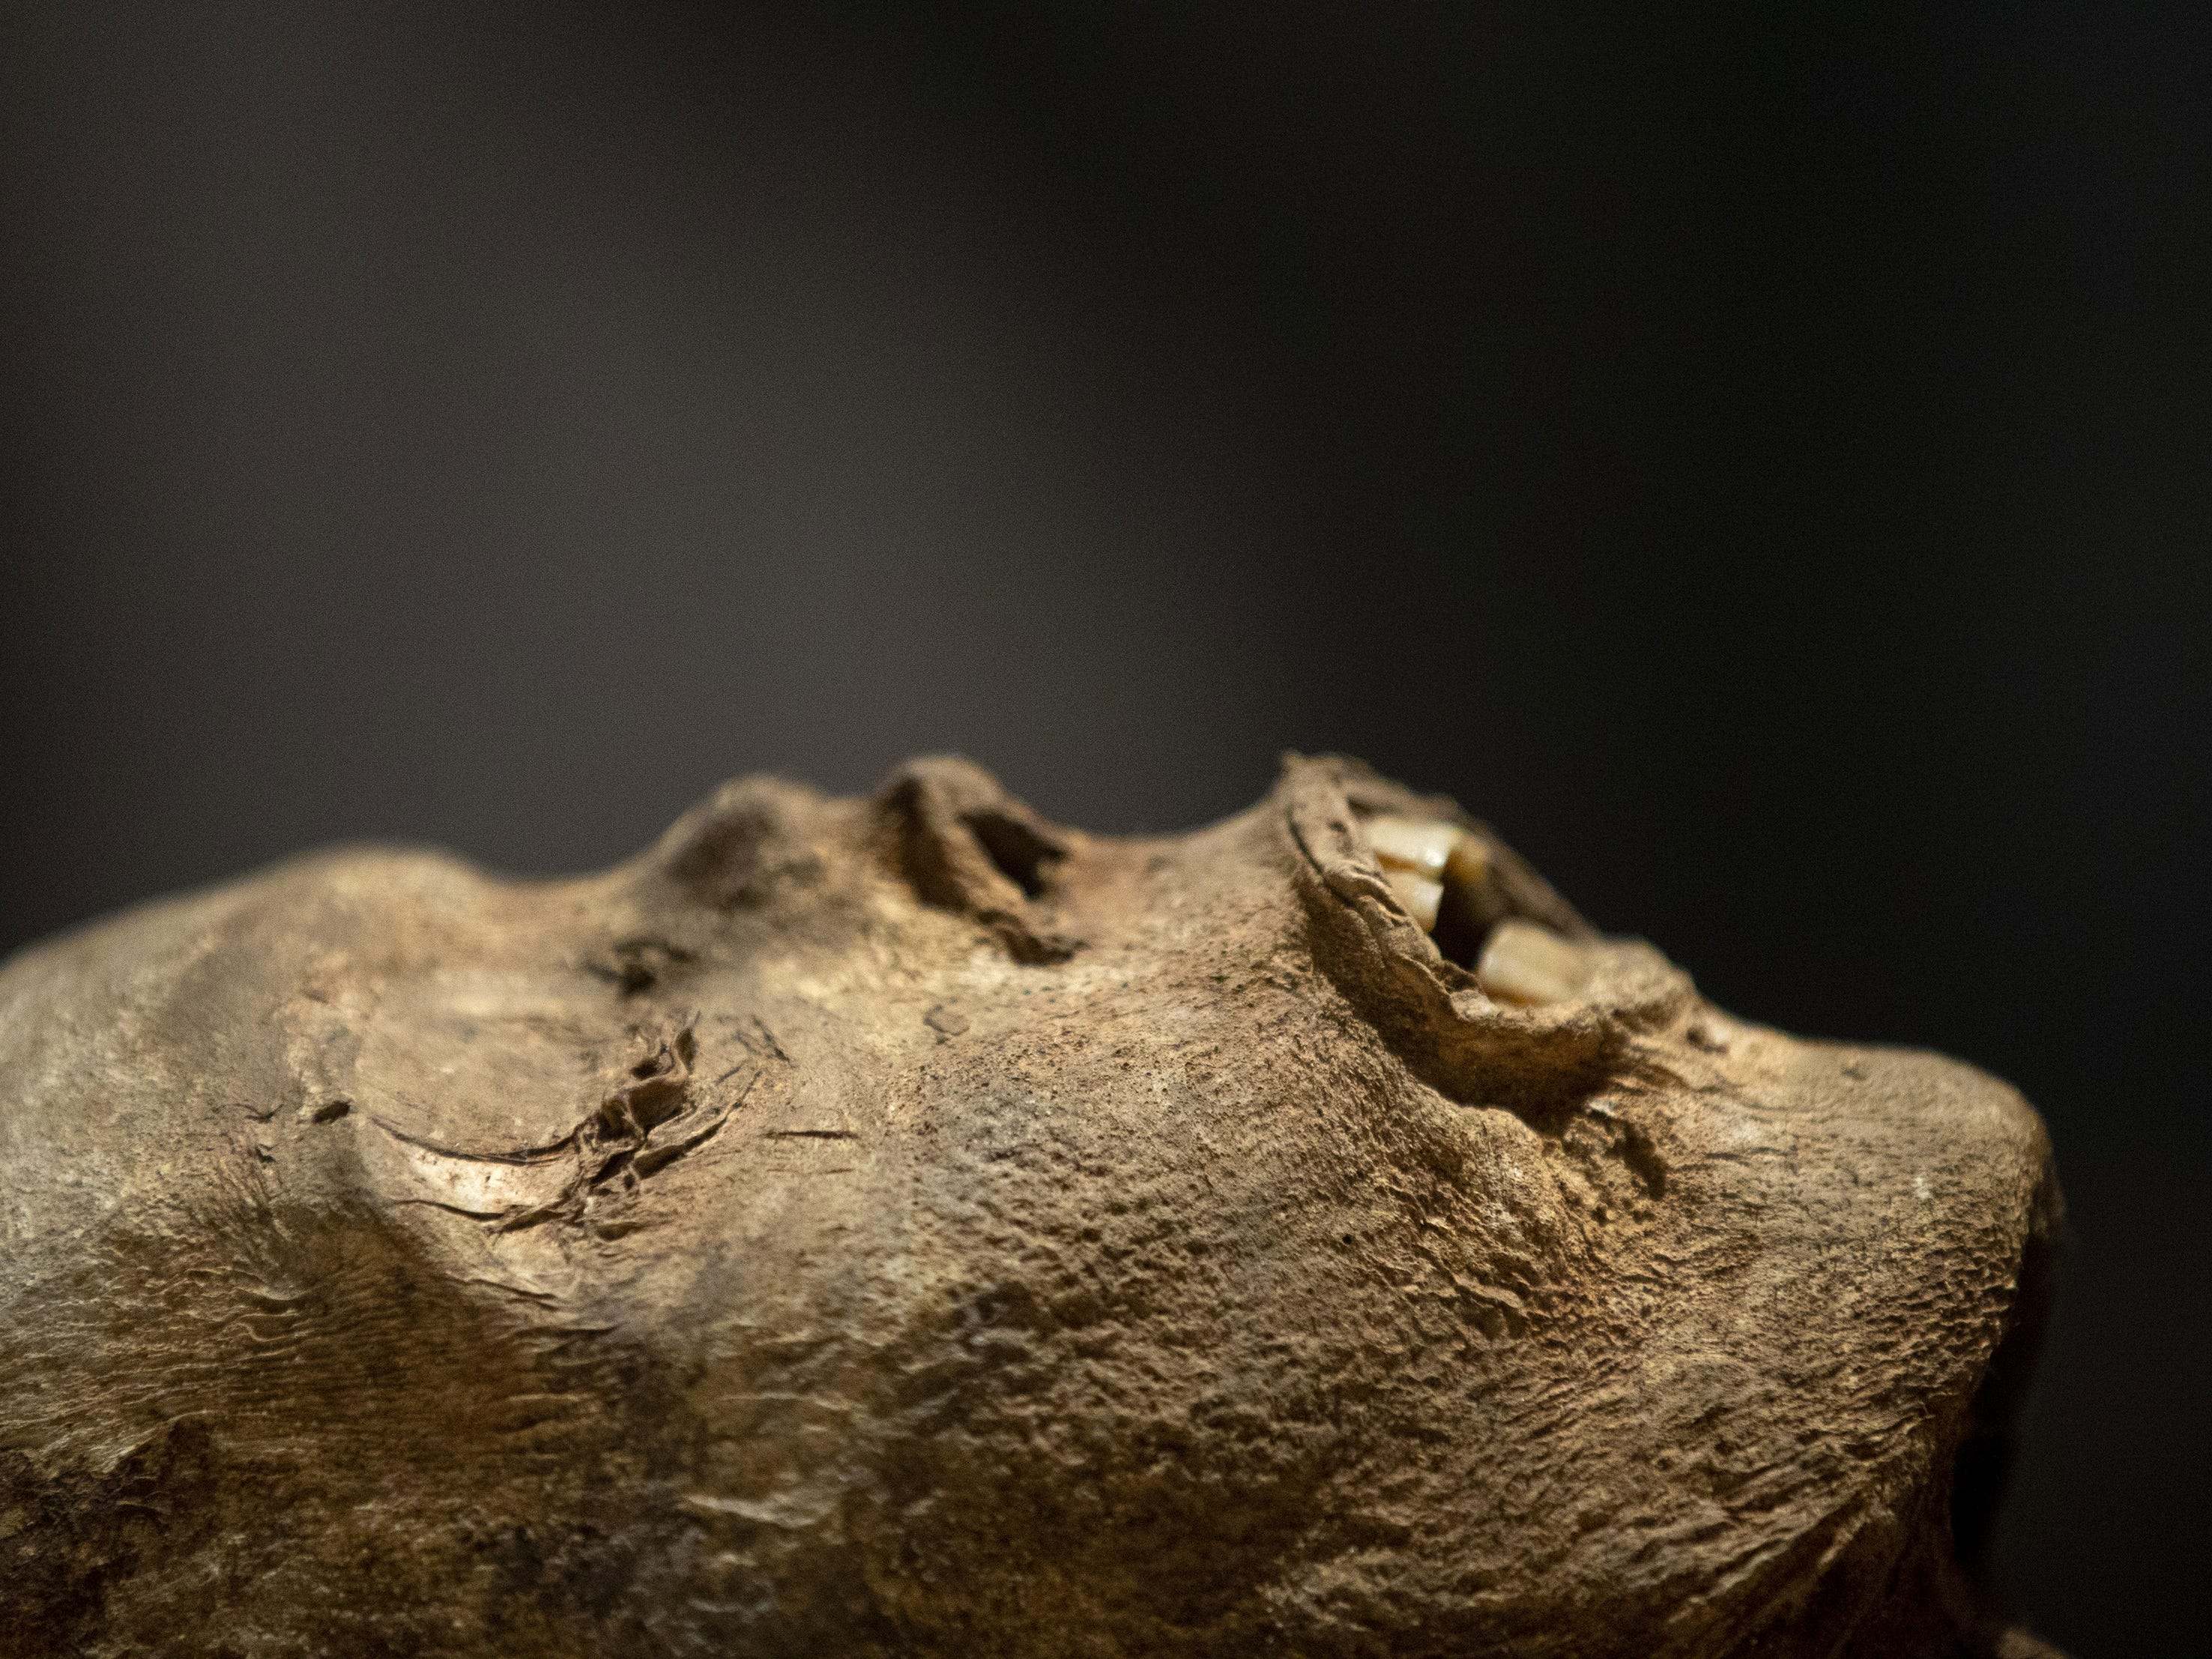 Mummies of the World: The Exhibition displays Baron von Holz at the Arizona Science Center. He is a naturally preserved mummy found at Sommersdorf Castle. The exhibit includes mummies from Egypt, Europe and the U.S. and is open to the public through Sept. 2, 2019.